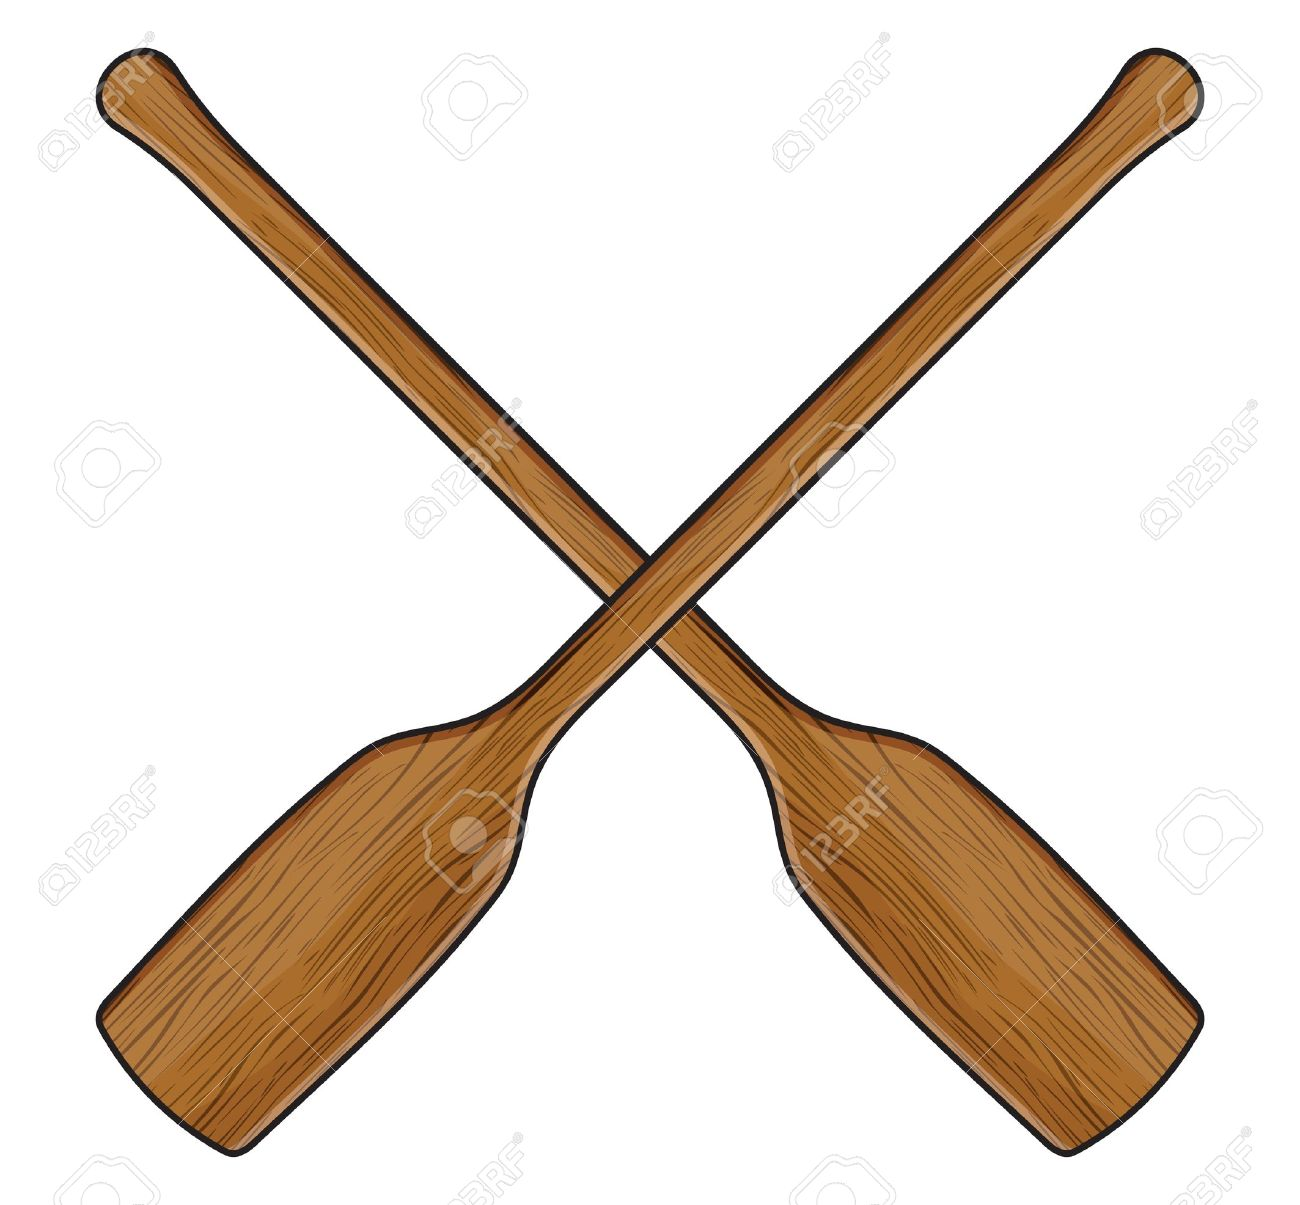 Wooden Canoe Paddle Royalty Free Cliparts Vectors And Stock